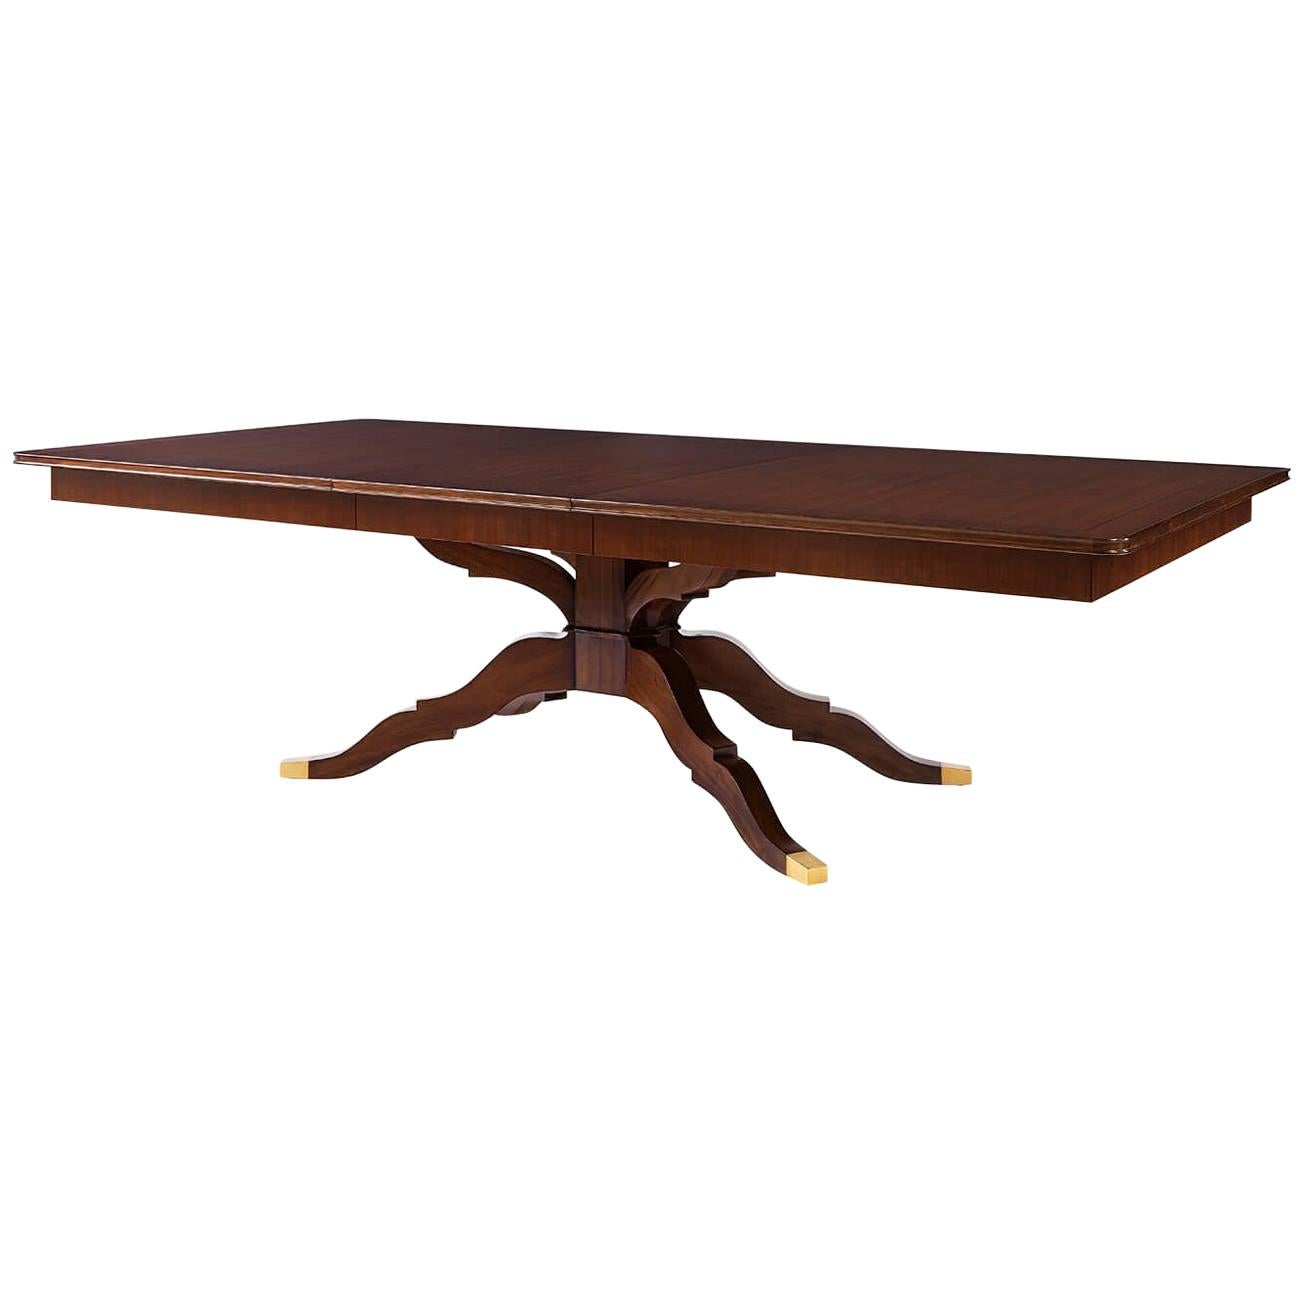 Midcentury Style Extension Dining Table